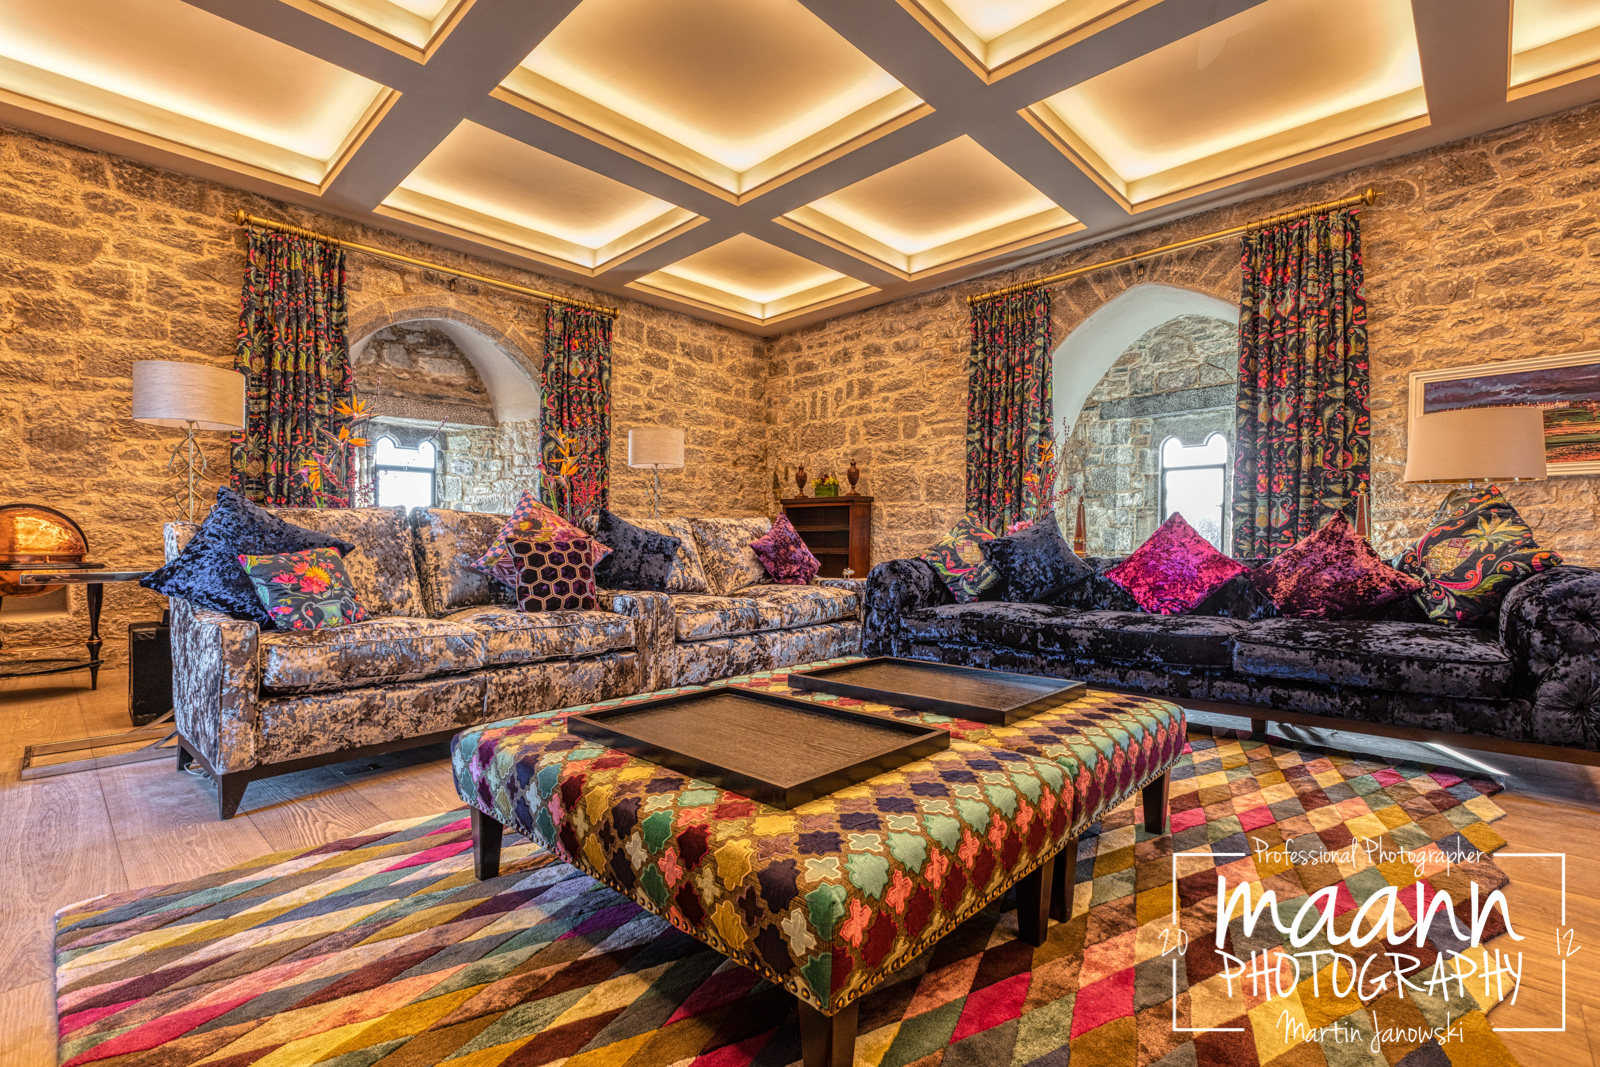 interior photography - Maann Photography